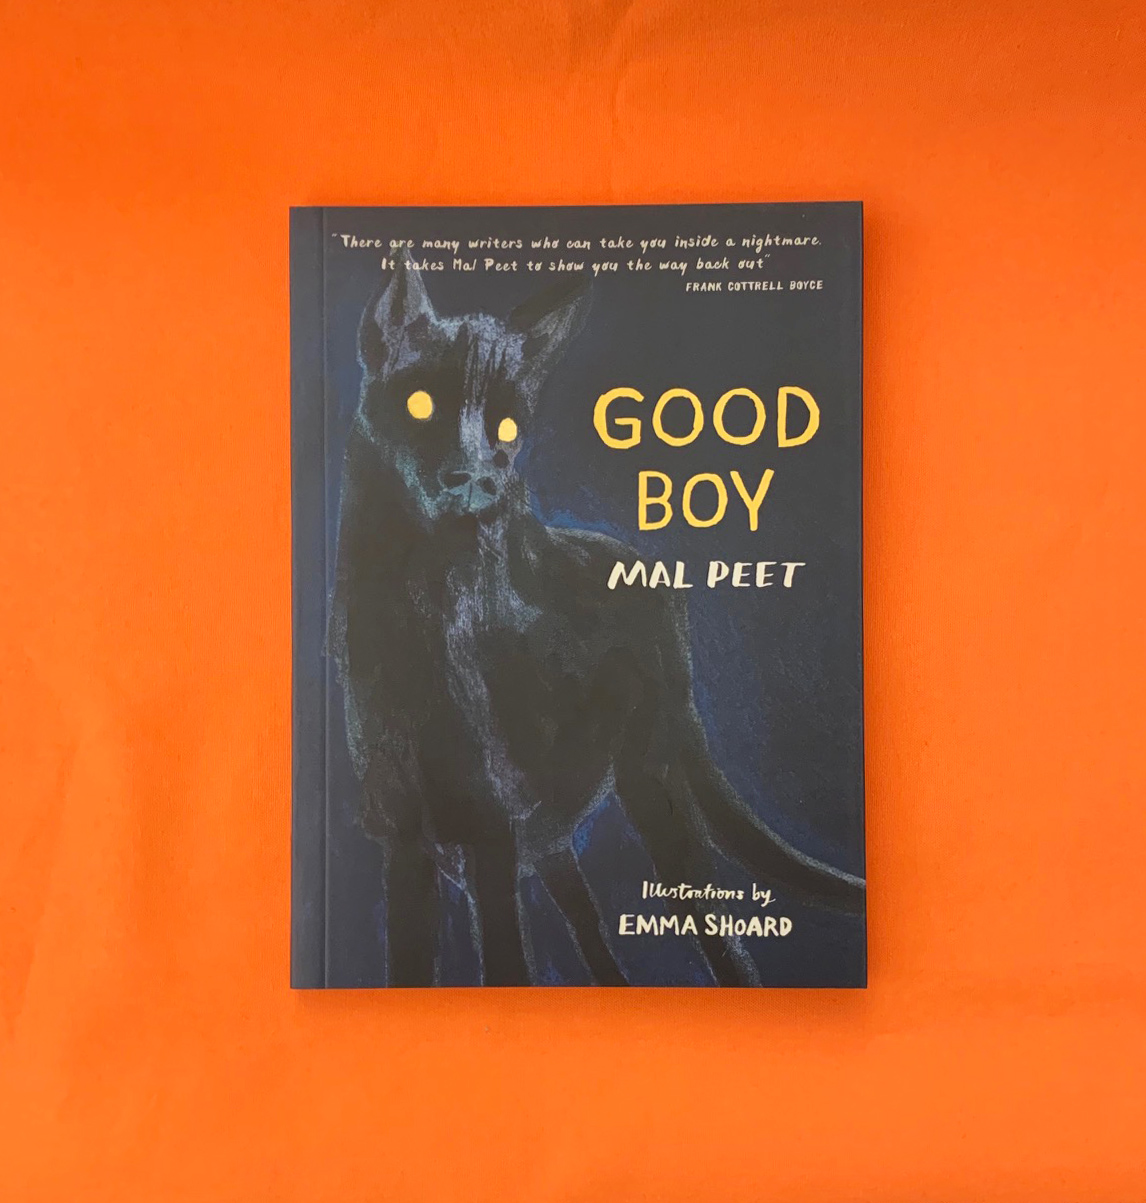 A photograph of the book GOOD BOY by Mal Peet